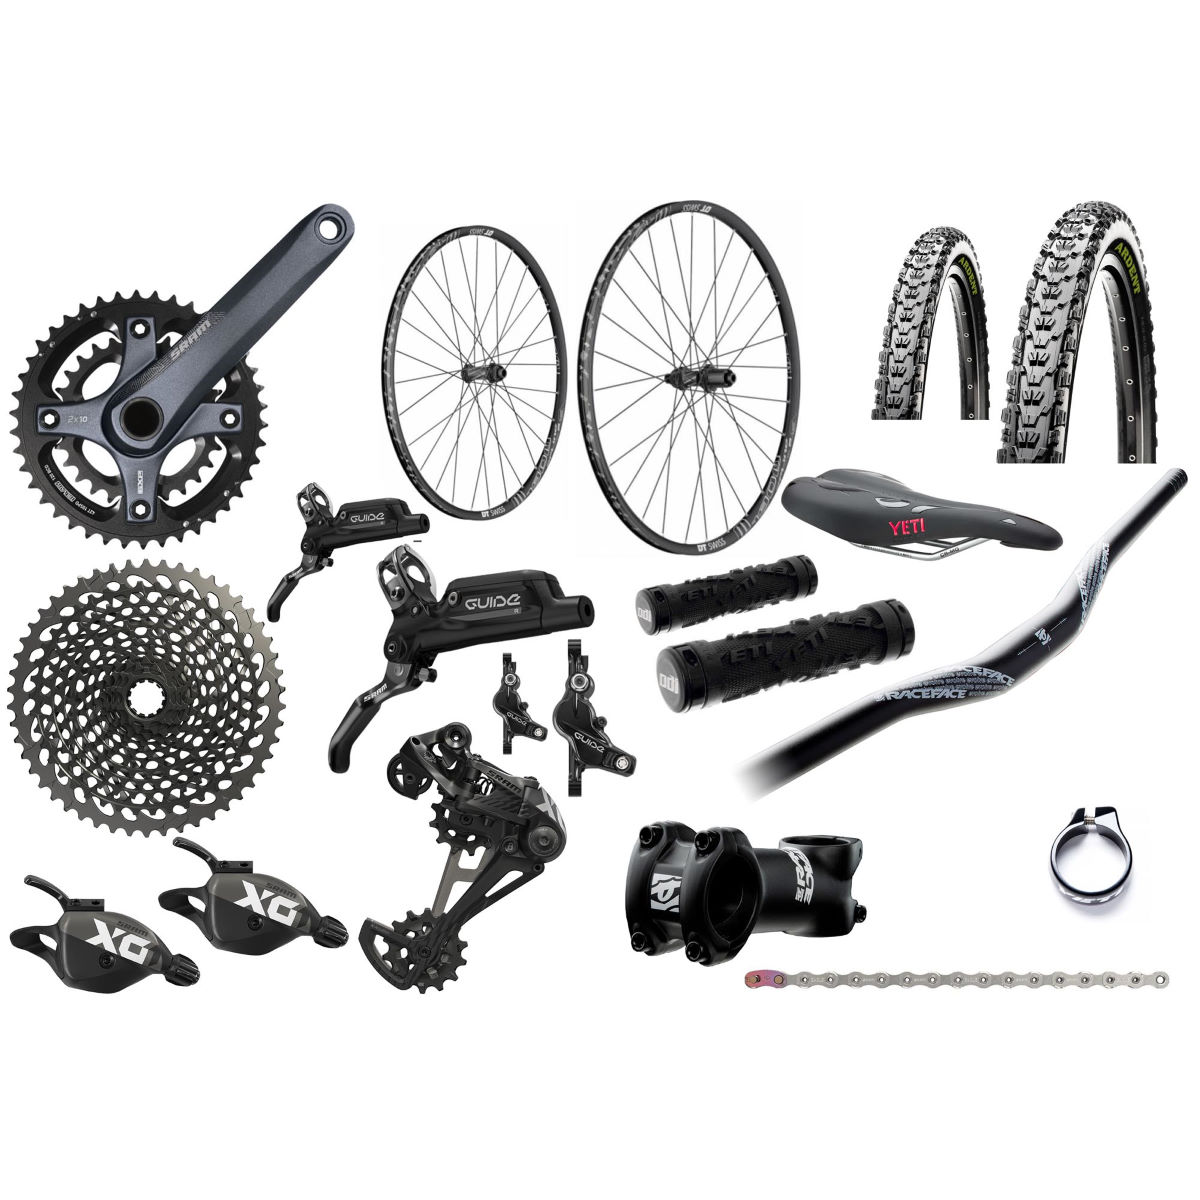 Yeti Yeti ASR Beti SRAM X01 Eagle Build Kit   Groupsets